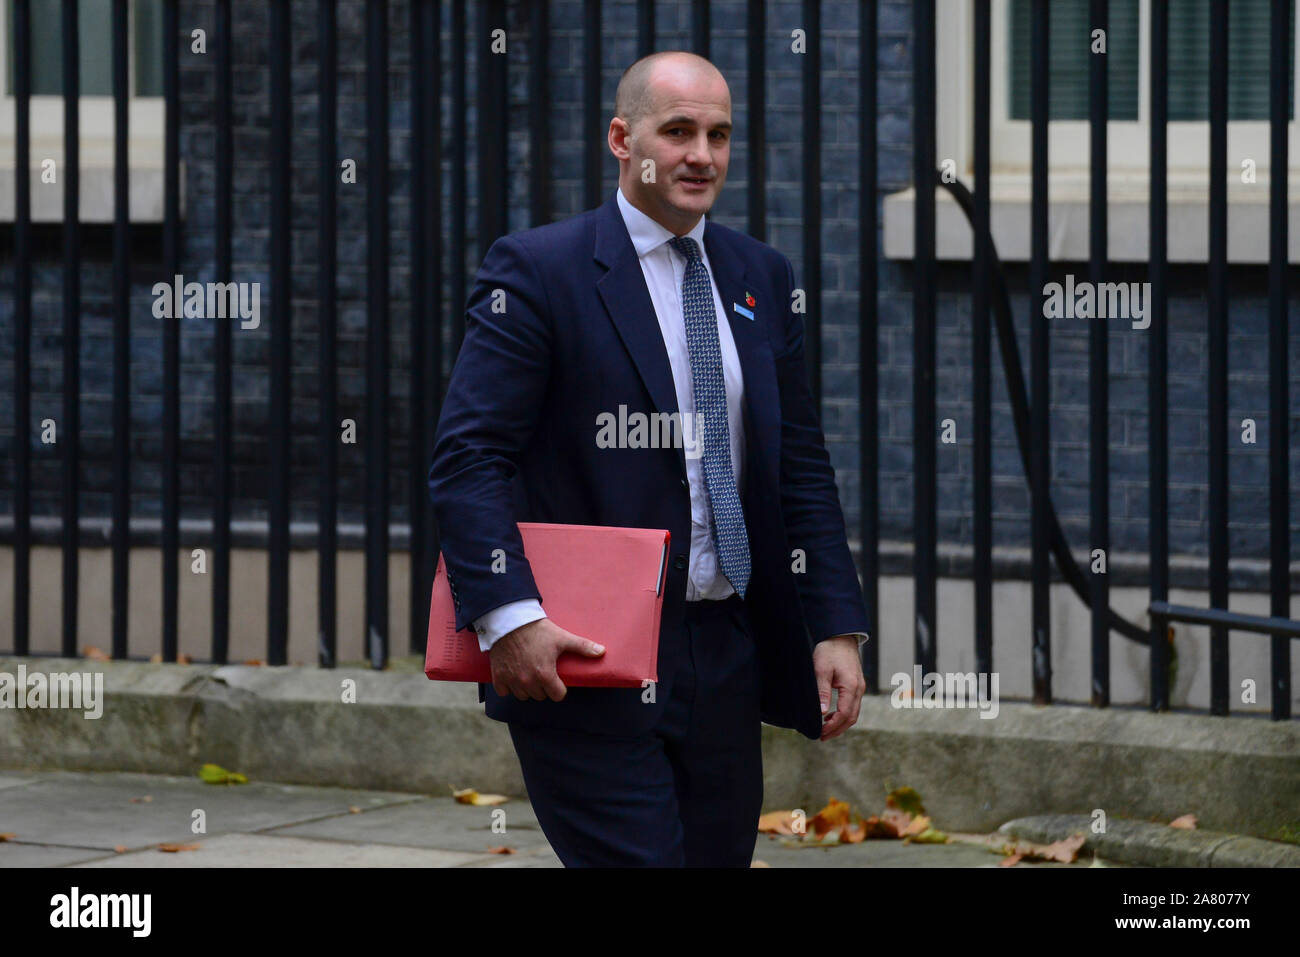 London, UK. 5th November 2019. Minister for the Northern Powerhouse Jake Berry, leaving Downing Street after a Cabinet Meeting. Claire Doherty/Alamy Live News. Stock Photo